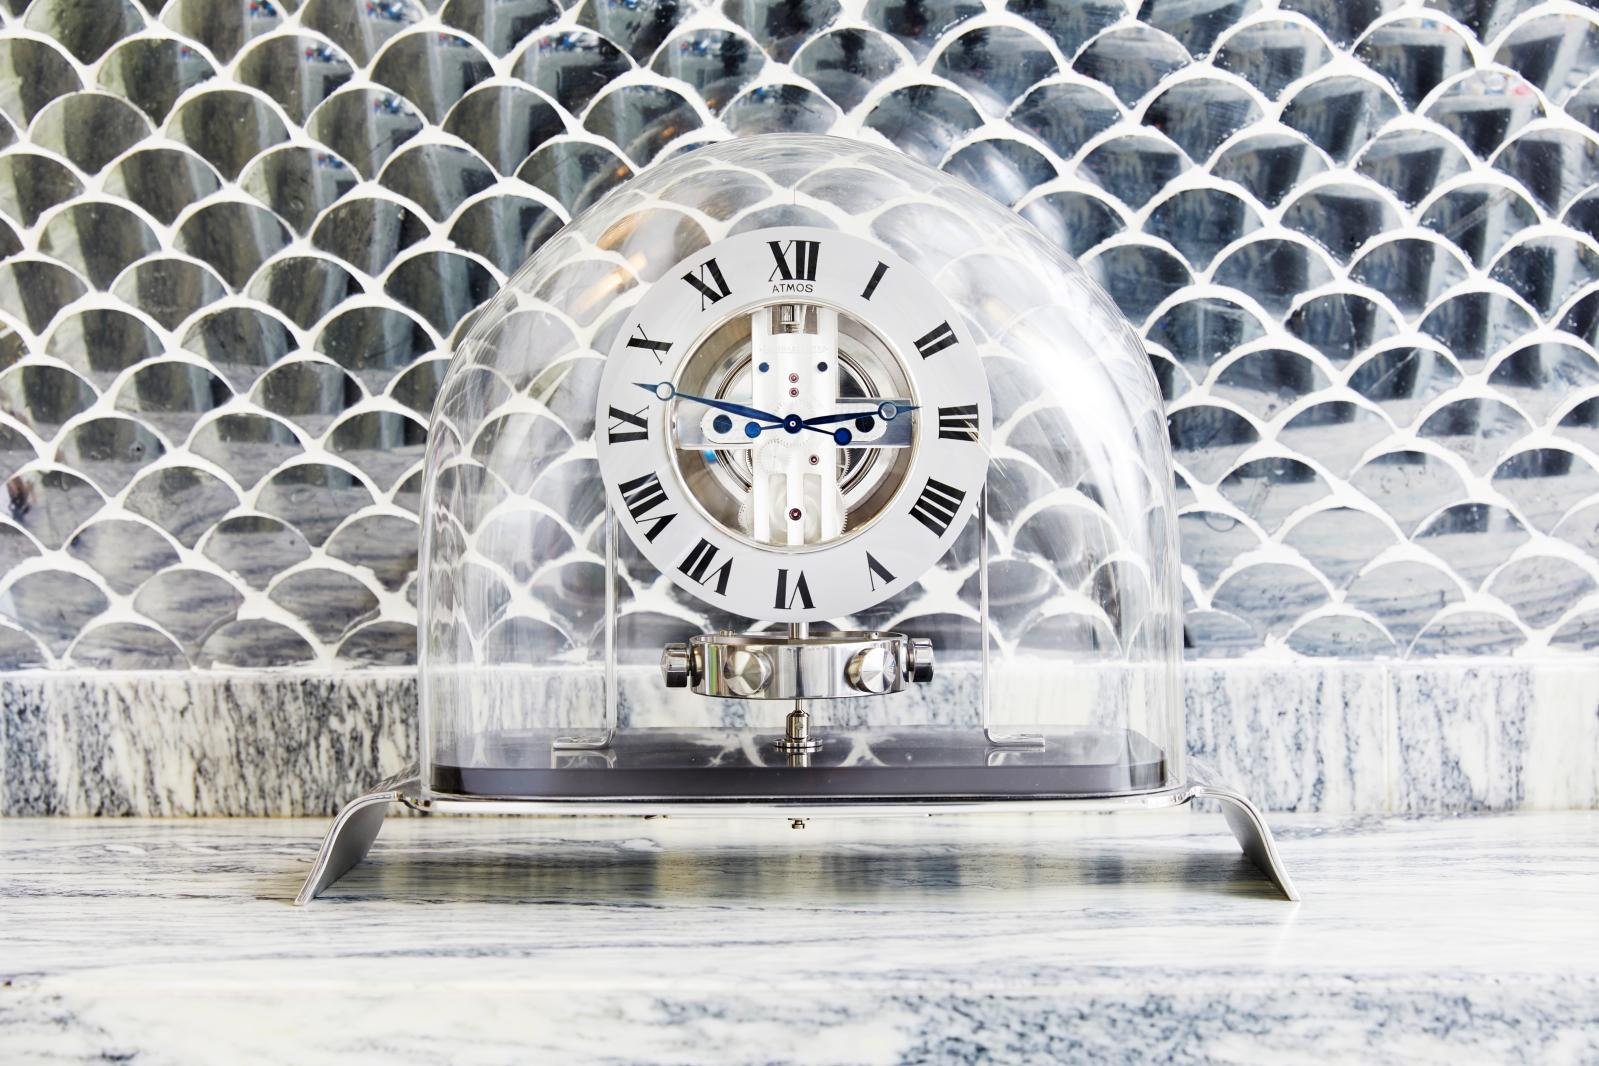 Made by Jaeger-LeCoultre in the 1930s, this Atmos clock is one of the many collector's items belonging to the designer